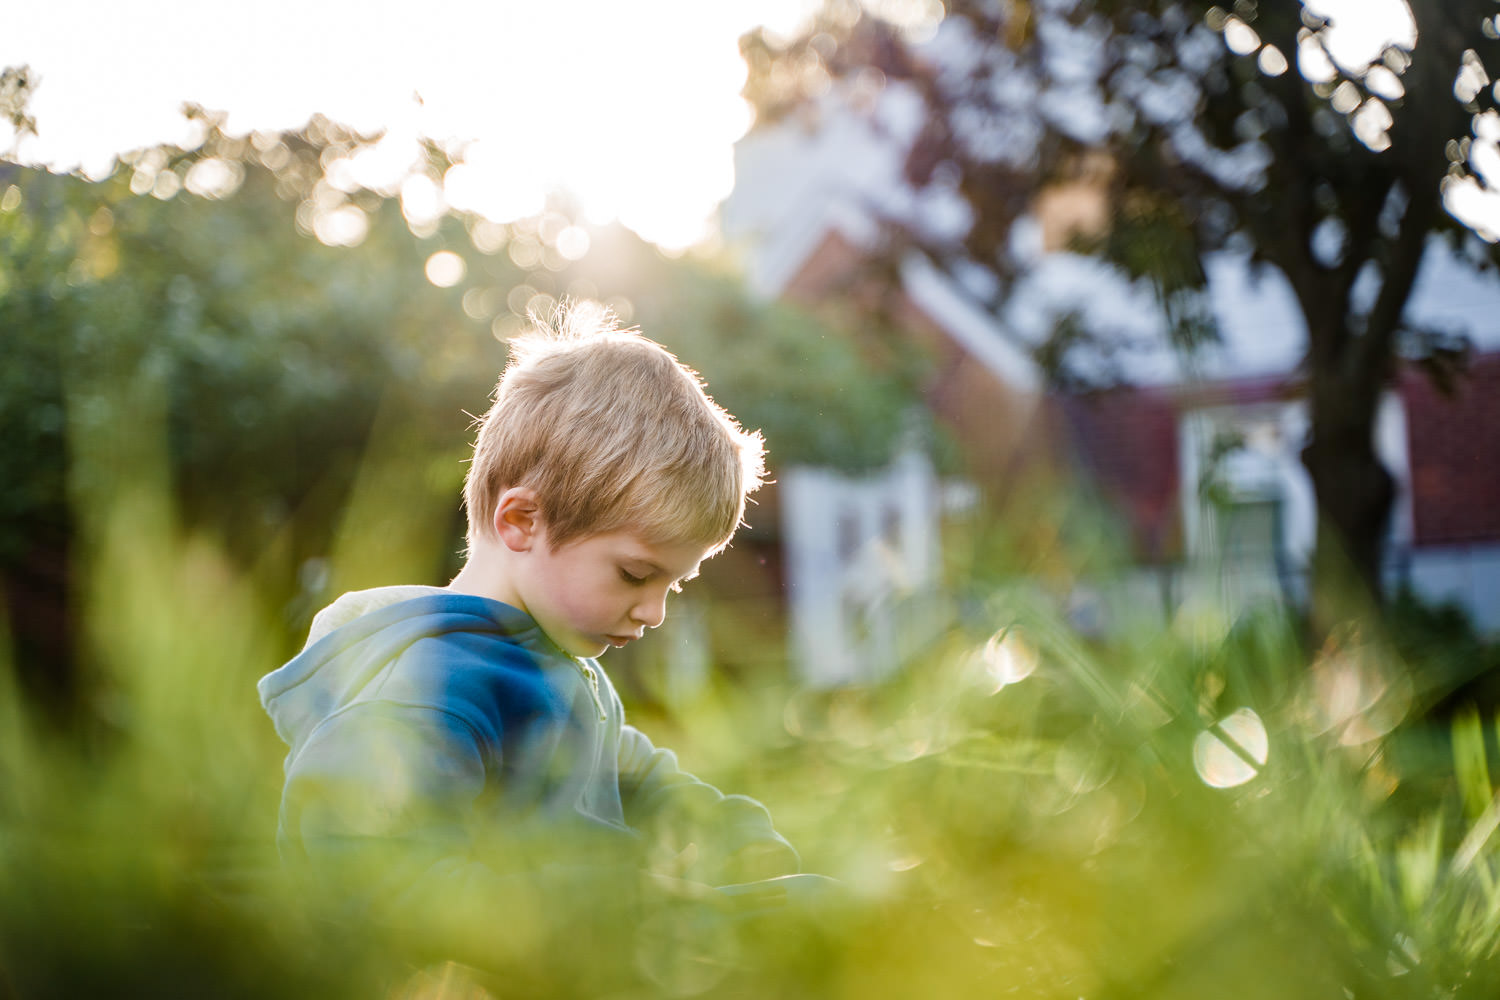 A little boy plays in the grass.